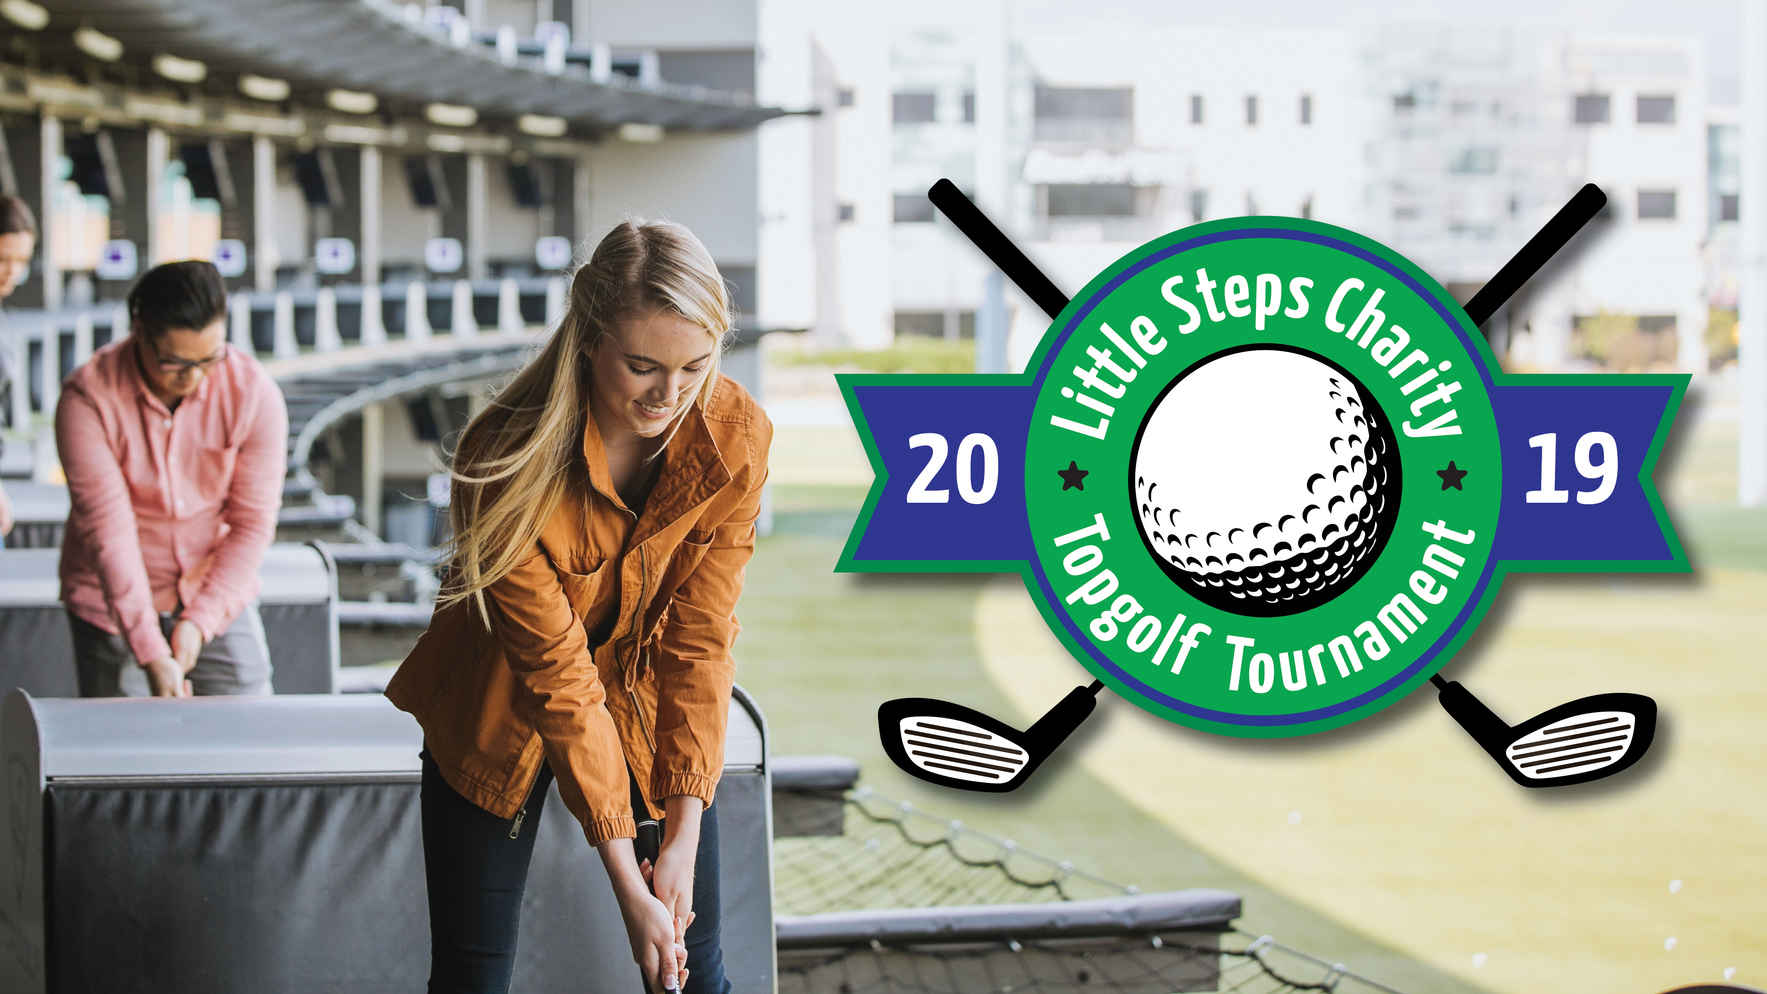 Little Steps Charity Topgolf Tournament image